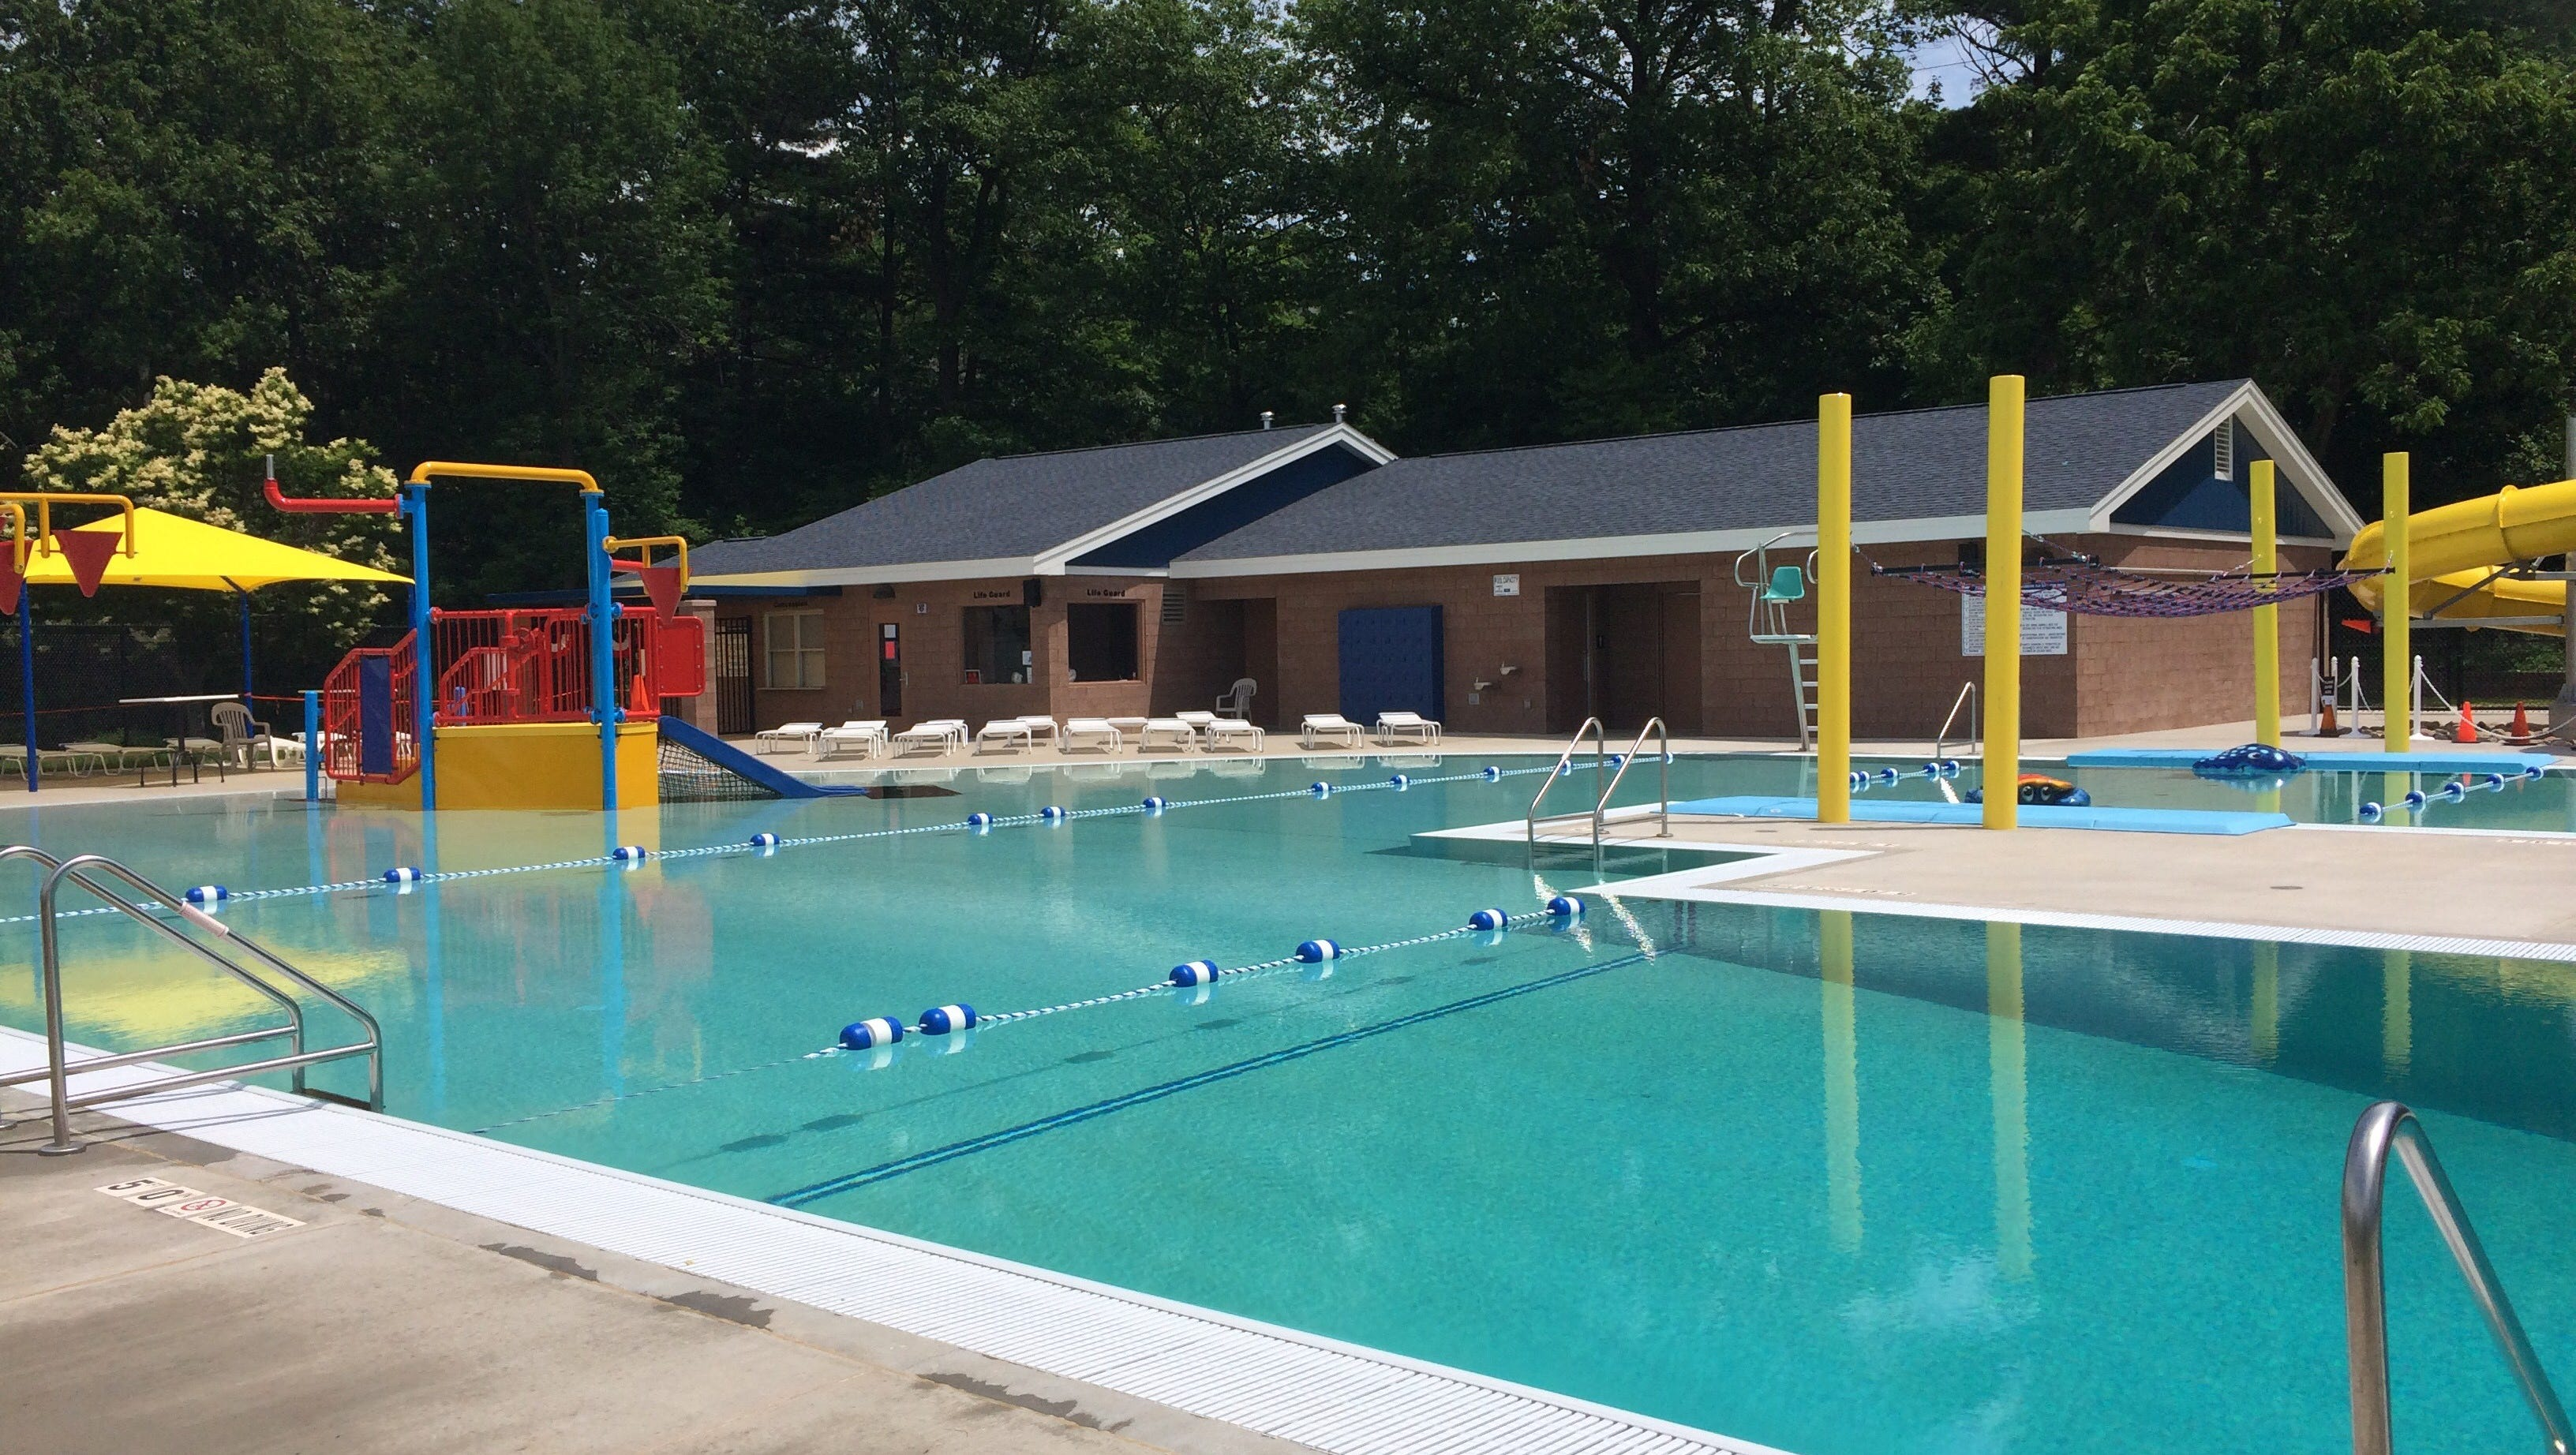 Wausau pools in limbo, Weston Aquatic Center plans to open amid COVID-19 pandemic